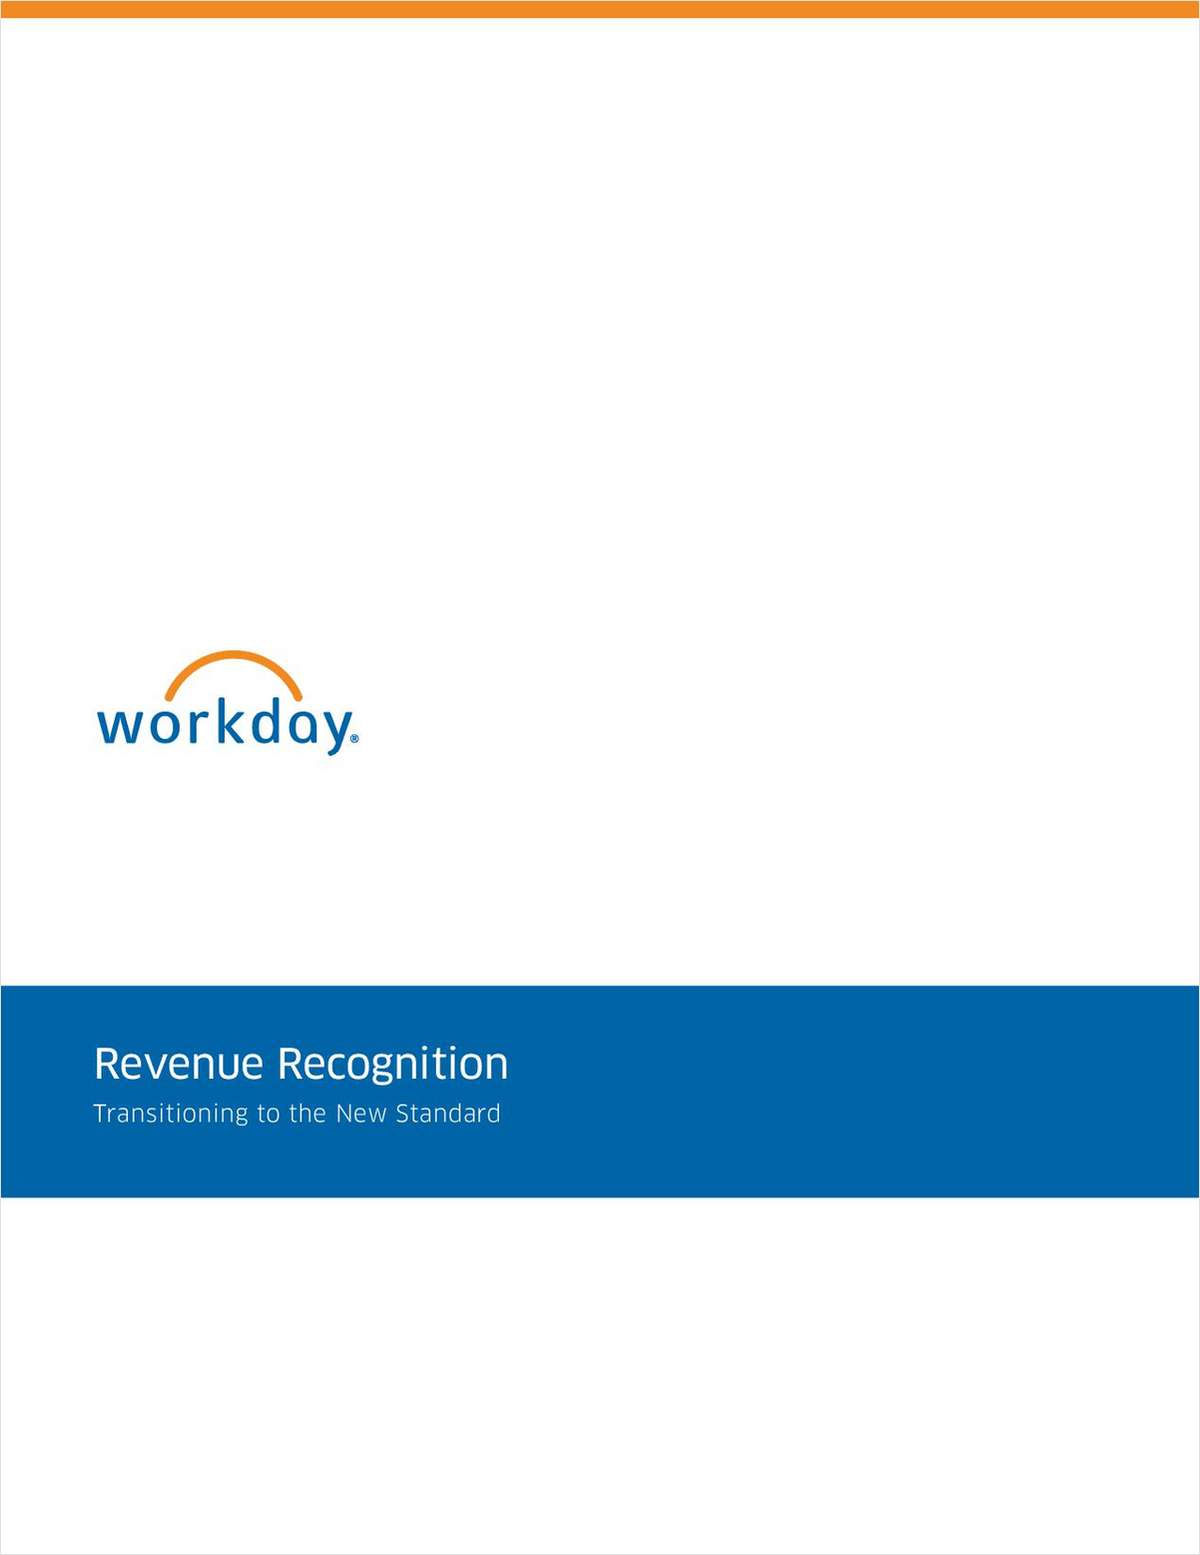 Revenue Recognition: Transitioning to the New Standard